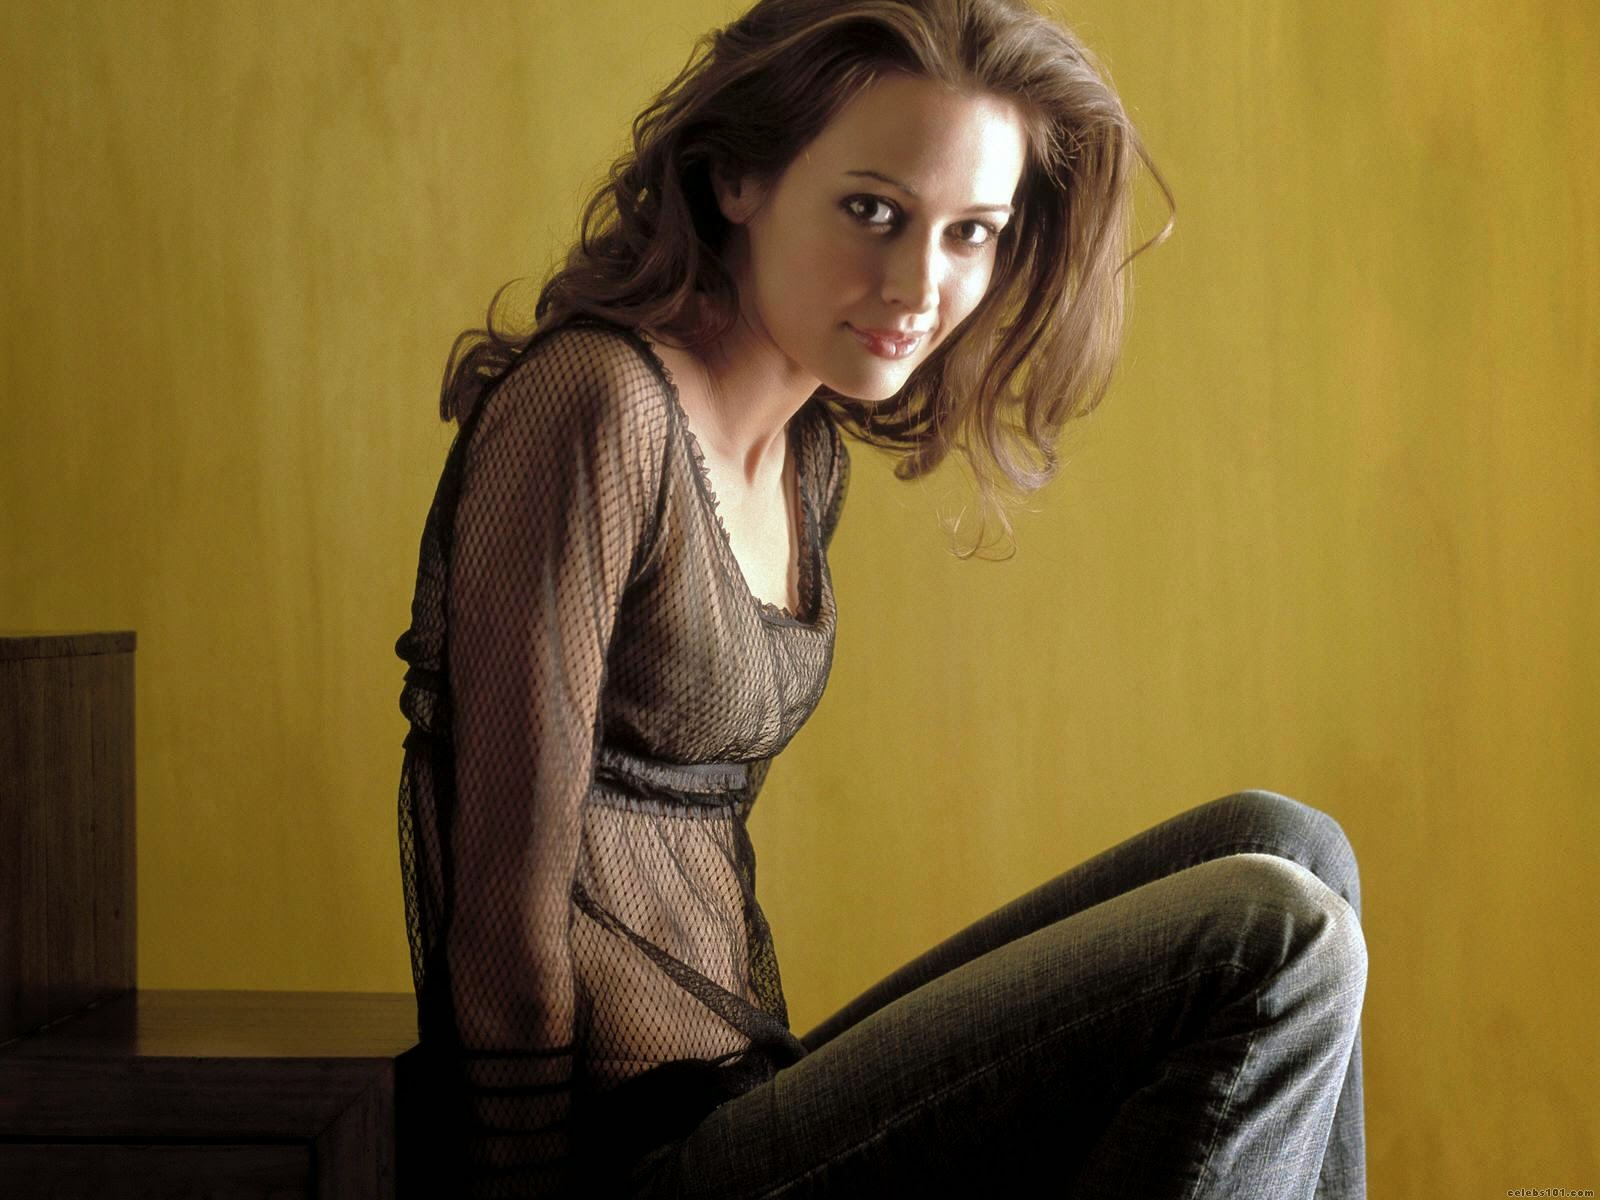 hollywood actress wallpaper: amy acker hd wallpapers